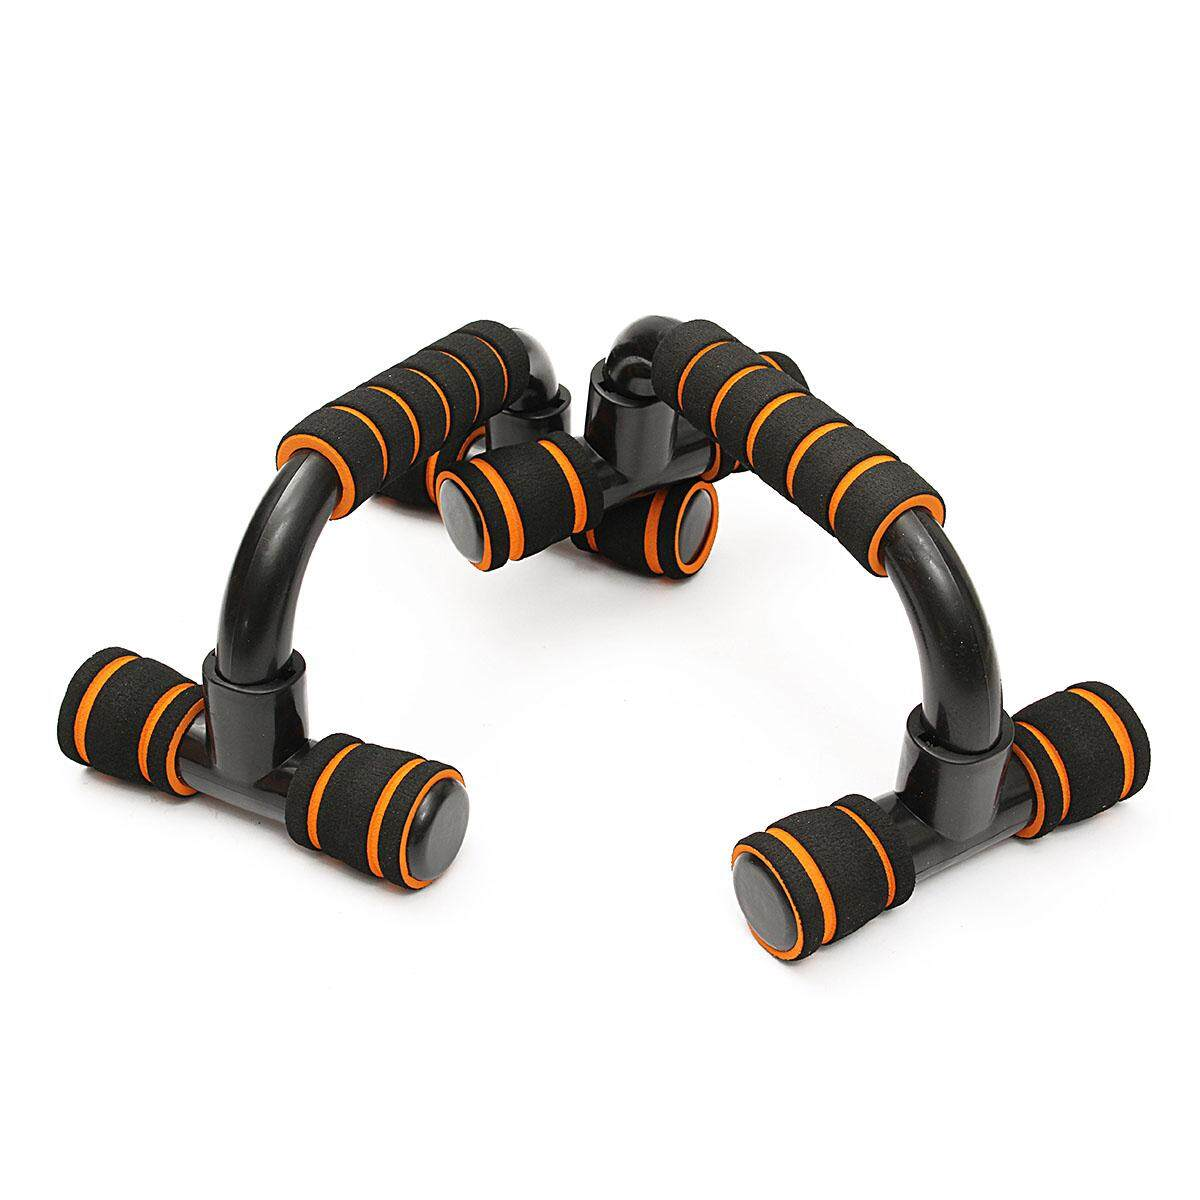 2x Handle Push Up Stands Pull Gym Bar Workout Training Exercise Home Fitness By Qiaosha.